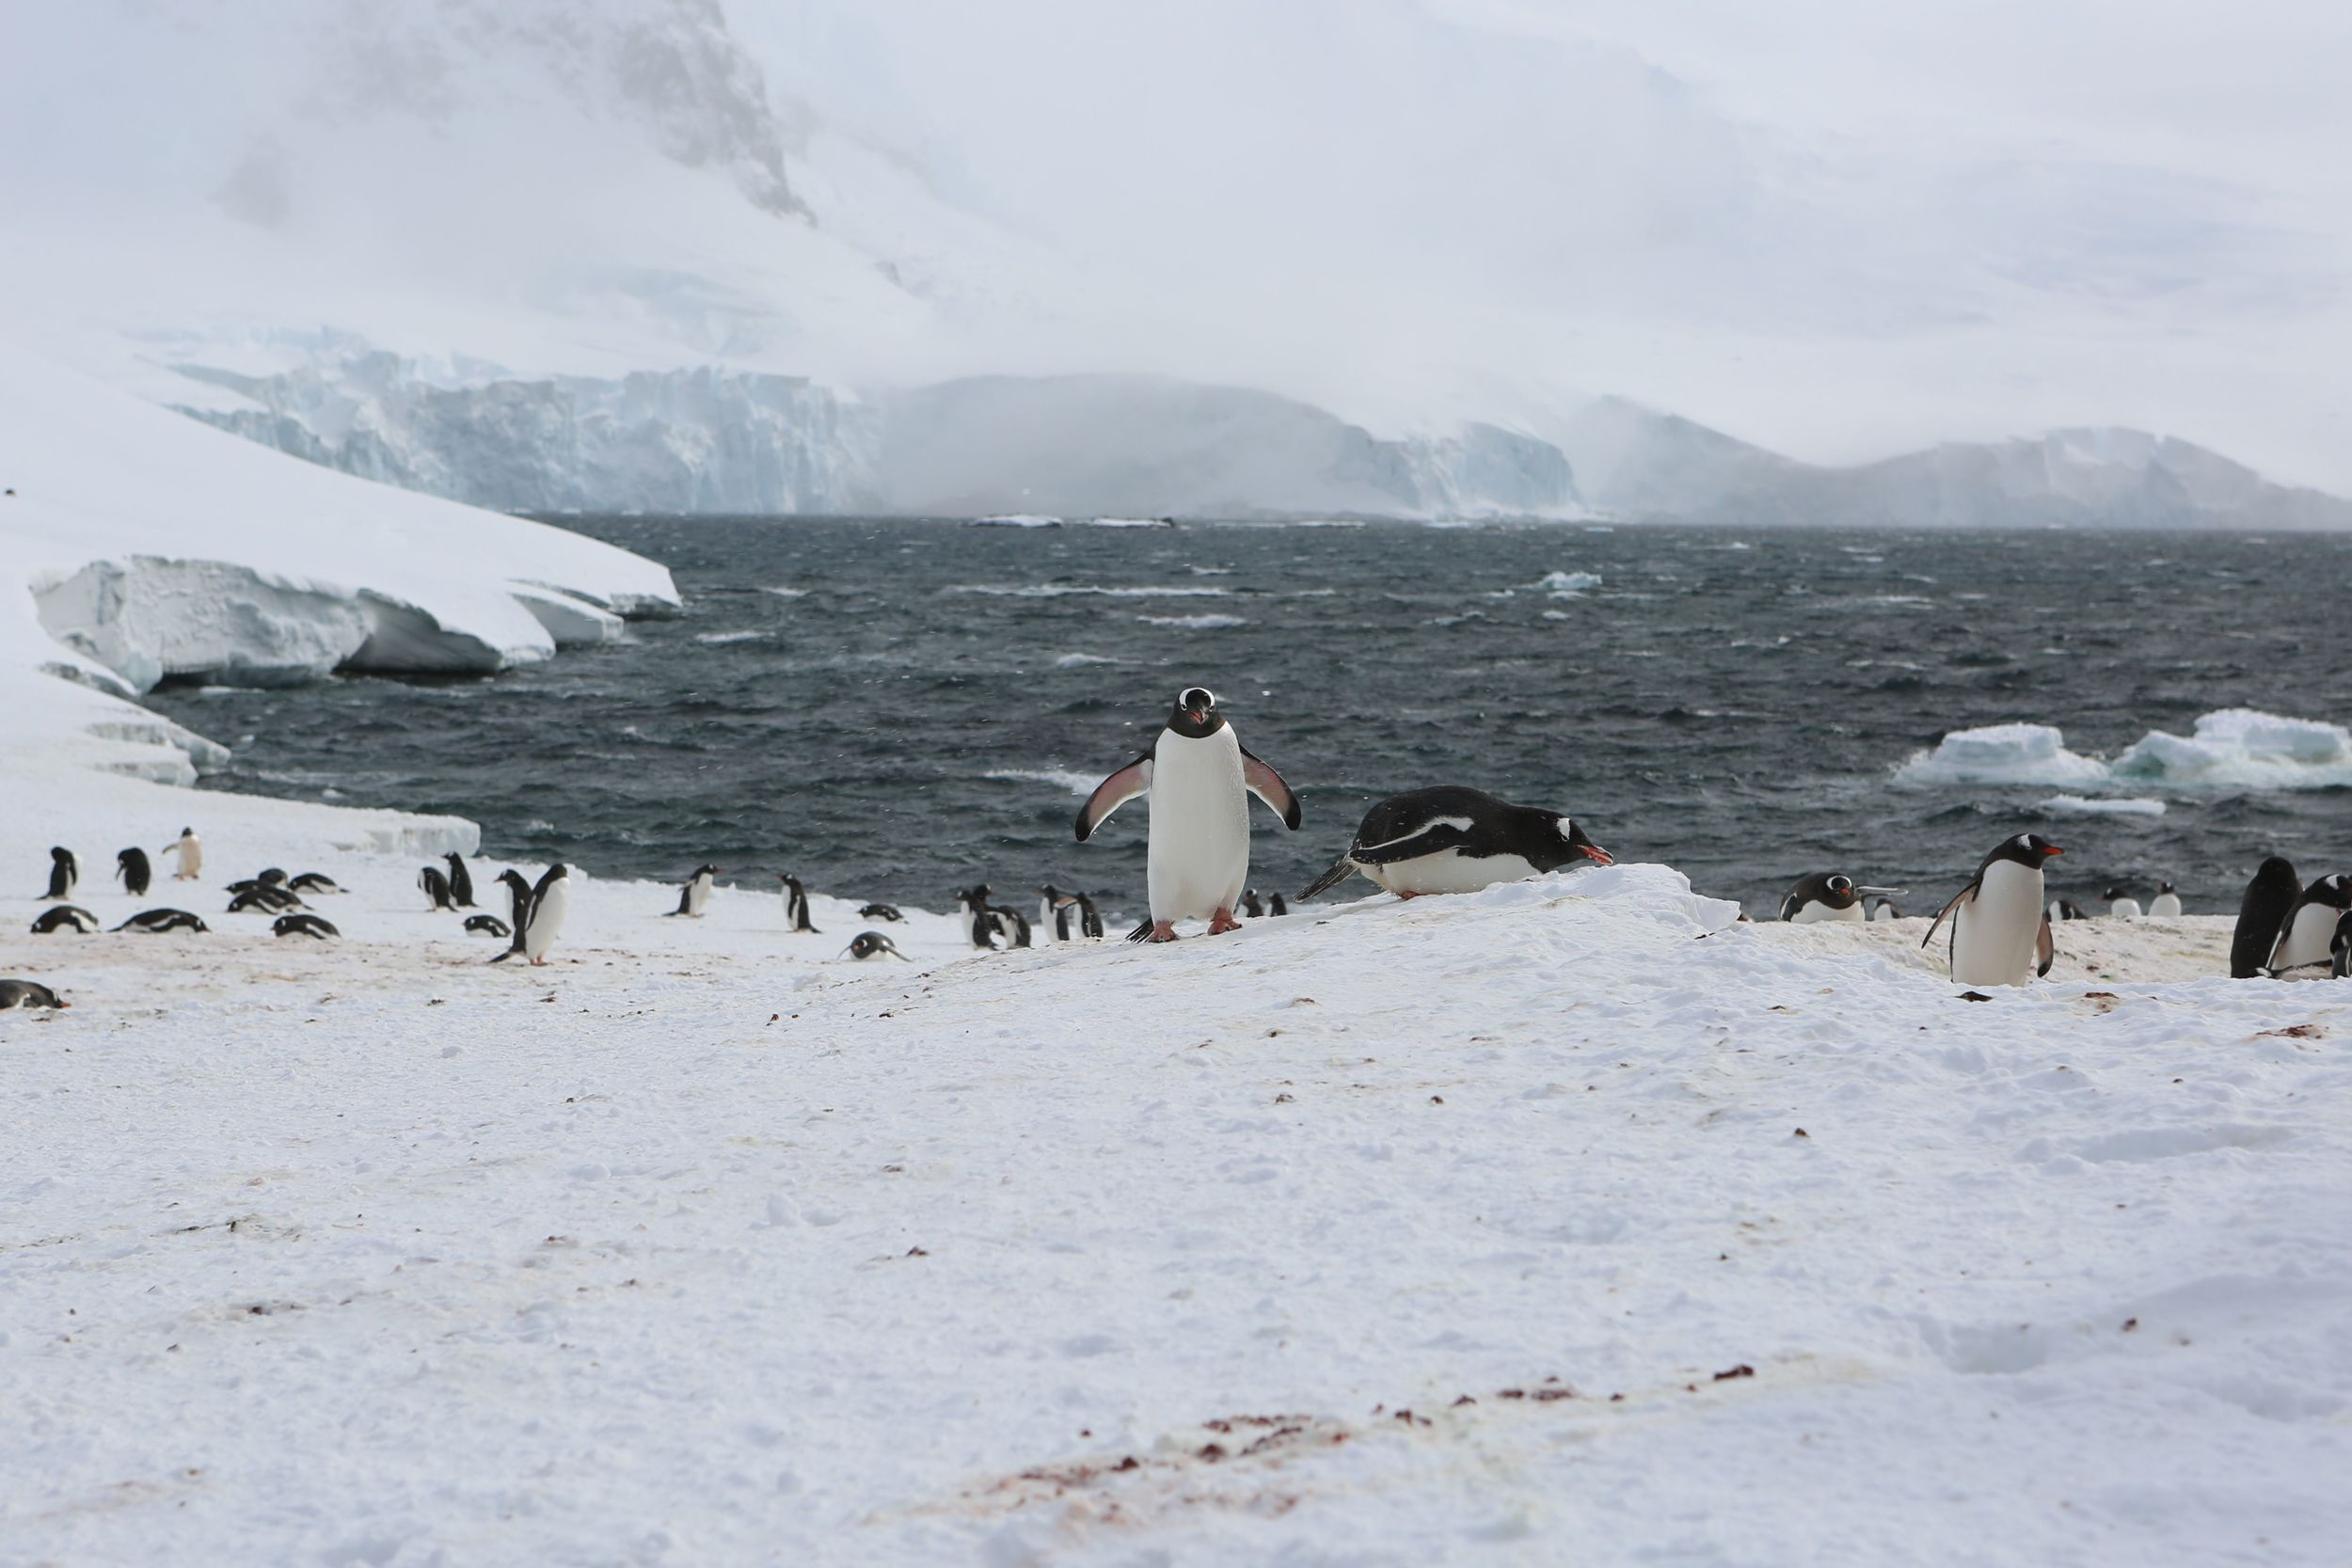 As I've written previously, the 30-inch-tall gentoos are the third-biggest species of penguin after emperors and kings. They're long-tailed penguins closely related two other species that we would unexpectedly see at Mikkelsen in the hours ahead—chinstraps and Adelies; in the course of evolution their genus broke off from those of other penguins 38 million years ago.